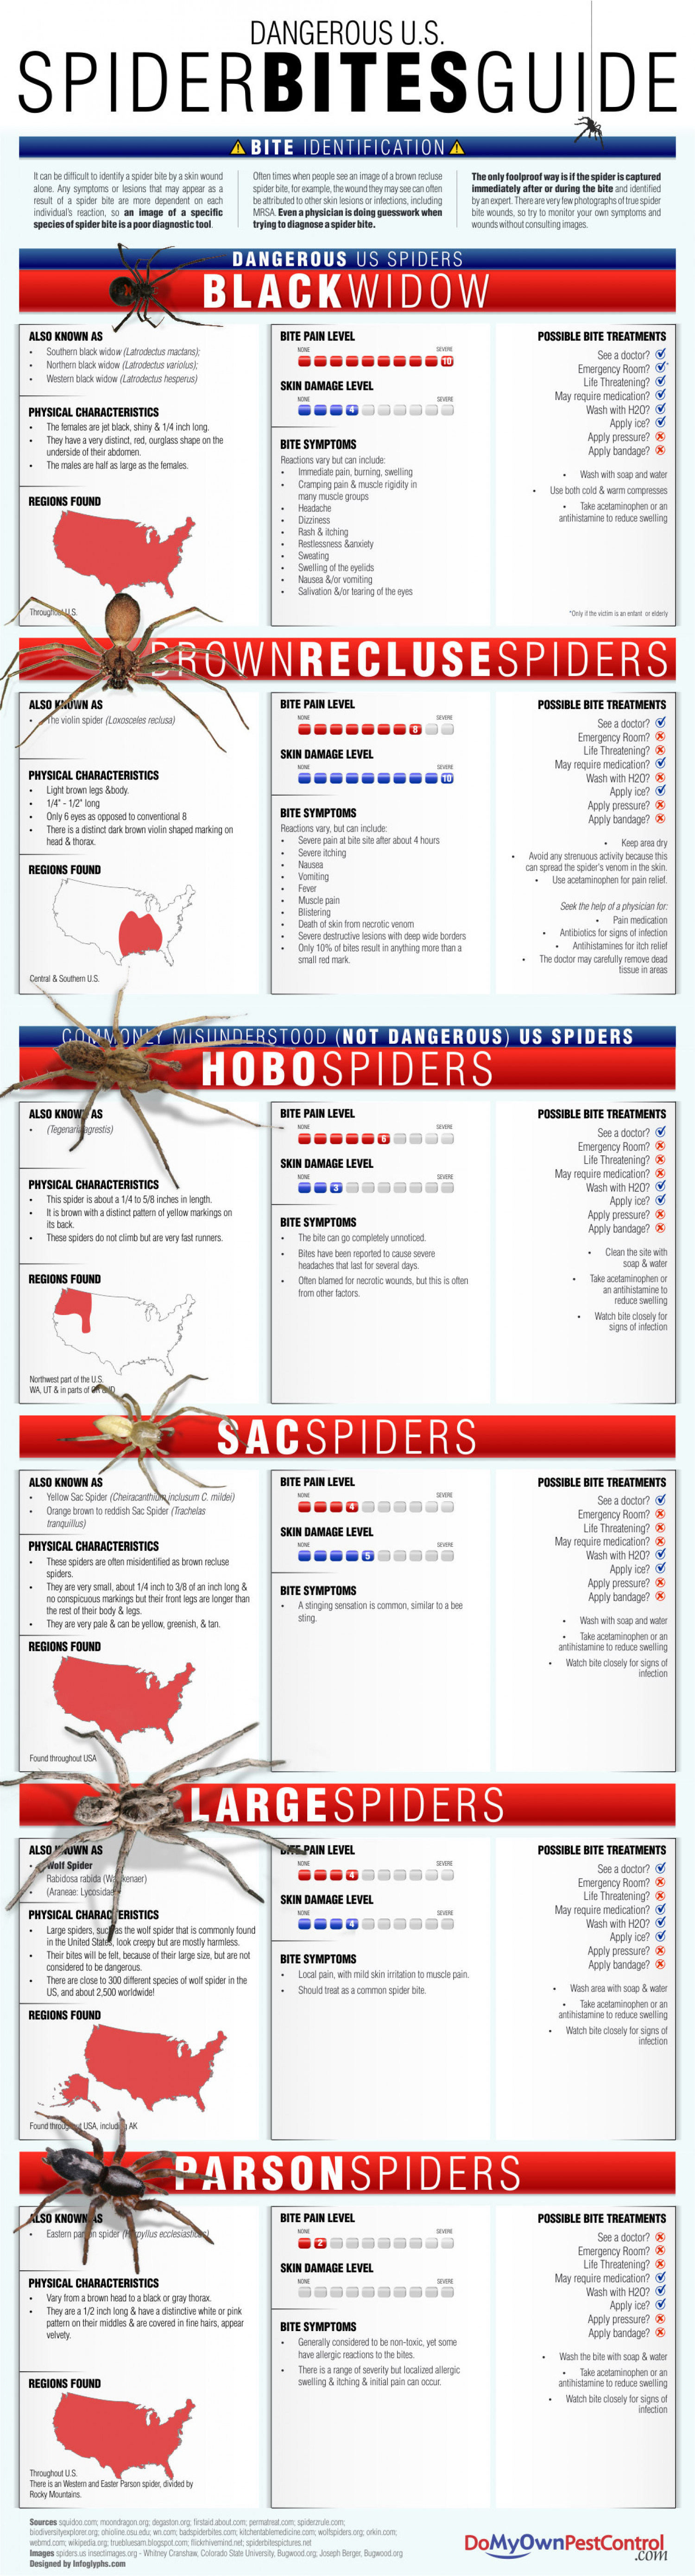 Dangerous U.S. Spider Bites Guide  Infographic